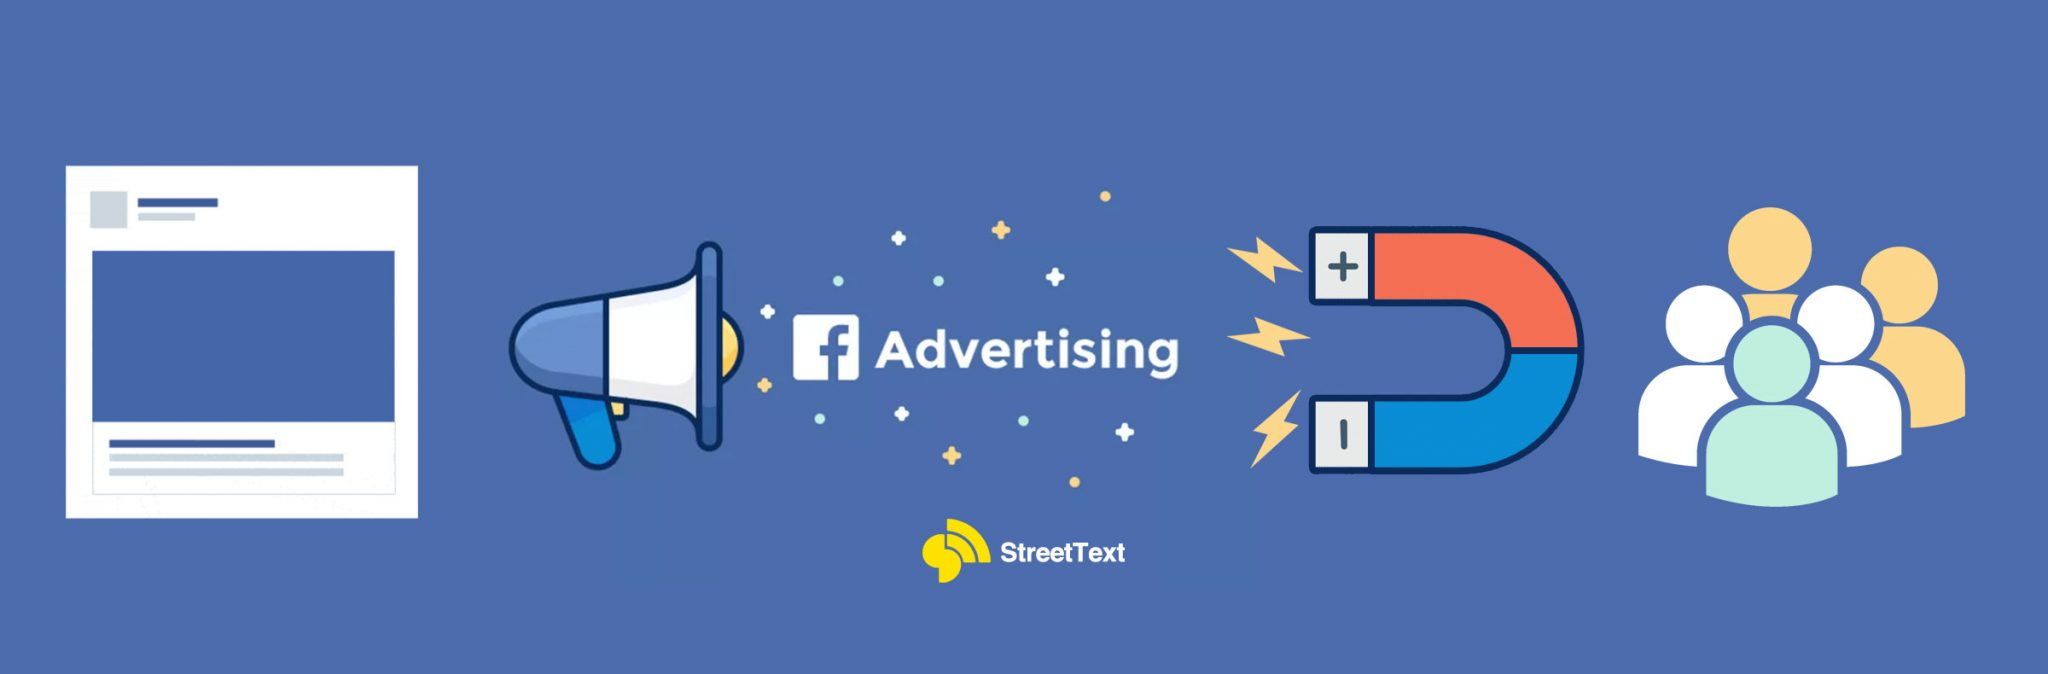 Facebook advertising for lead generation